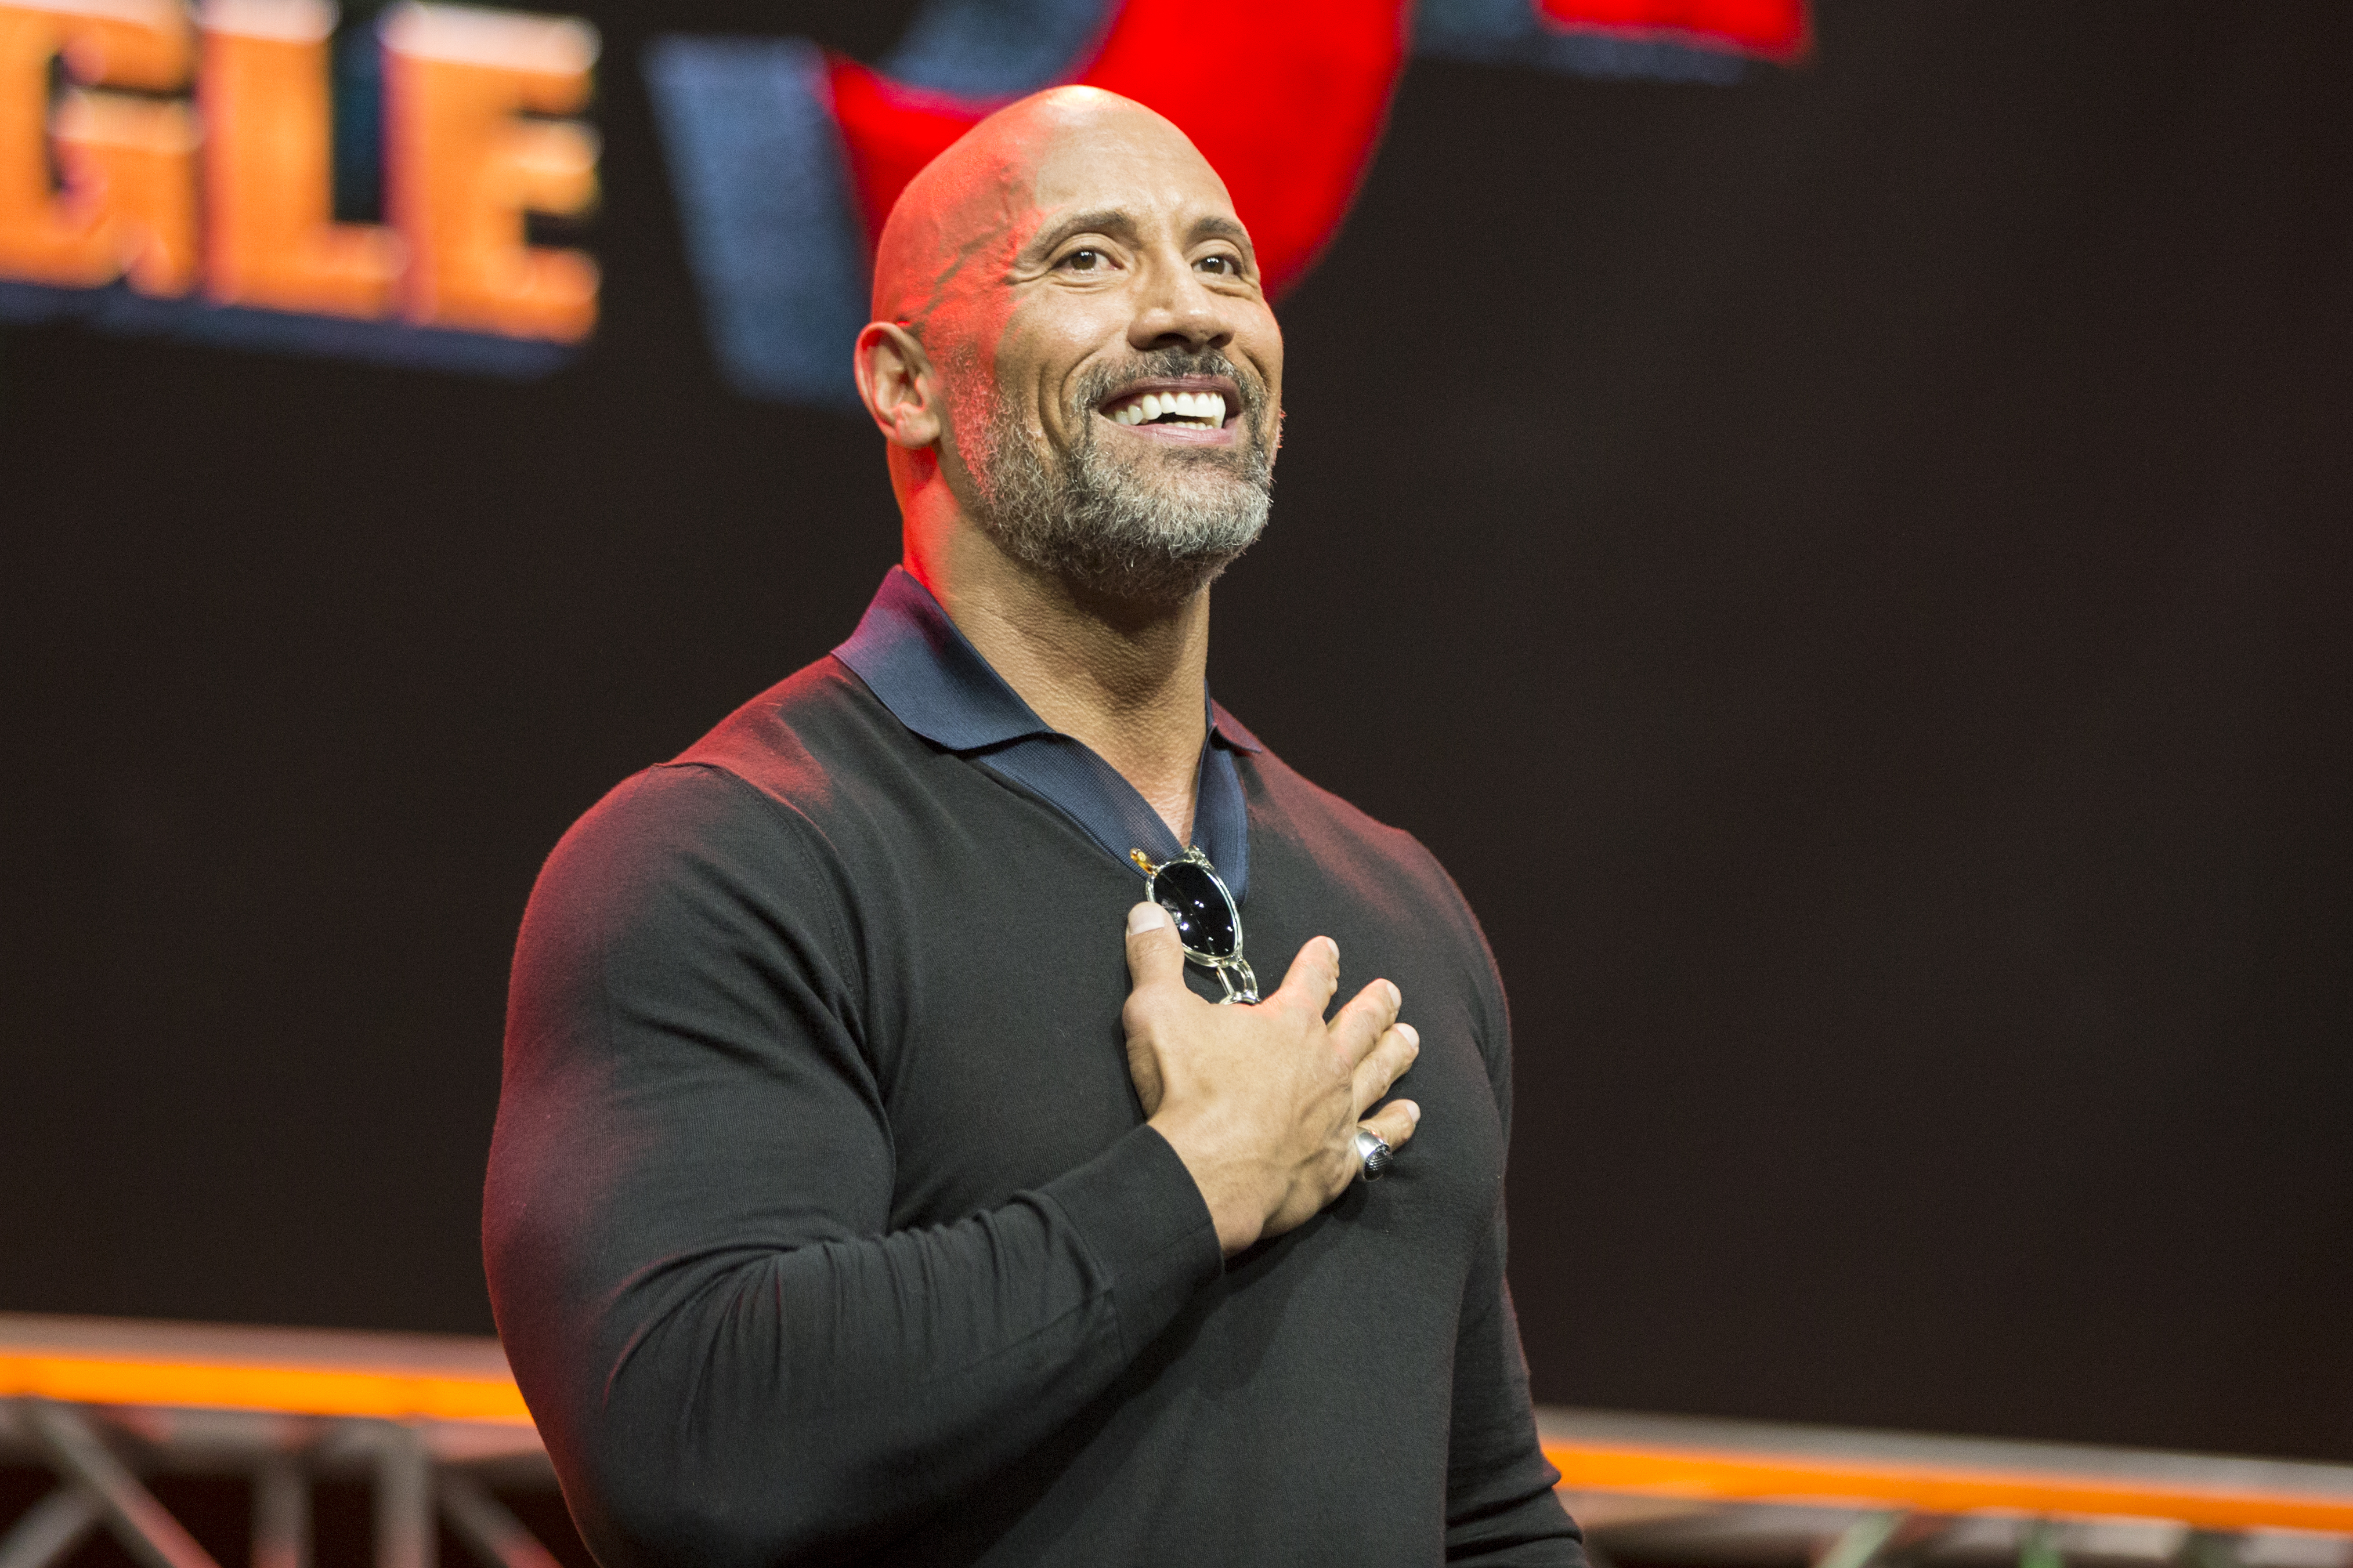 ENTERTAINMENT WEEKLY Presents Dwayne 'The Rock' Johnson at Stan Lee's Los Angeles Comic-Con on Saturda,, October 28, 2017